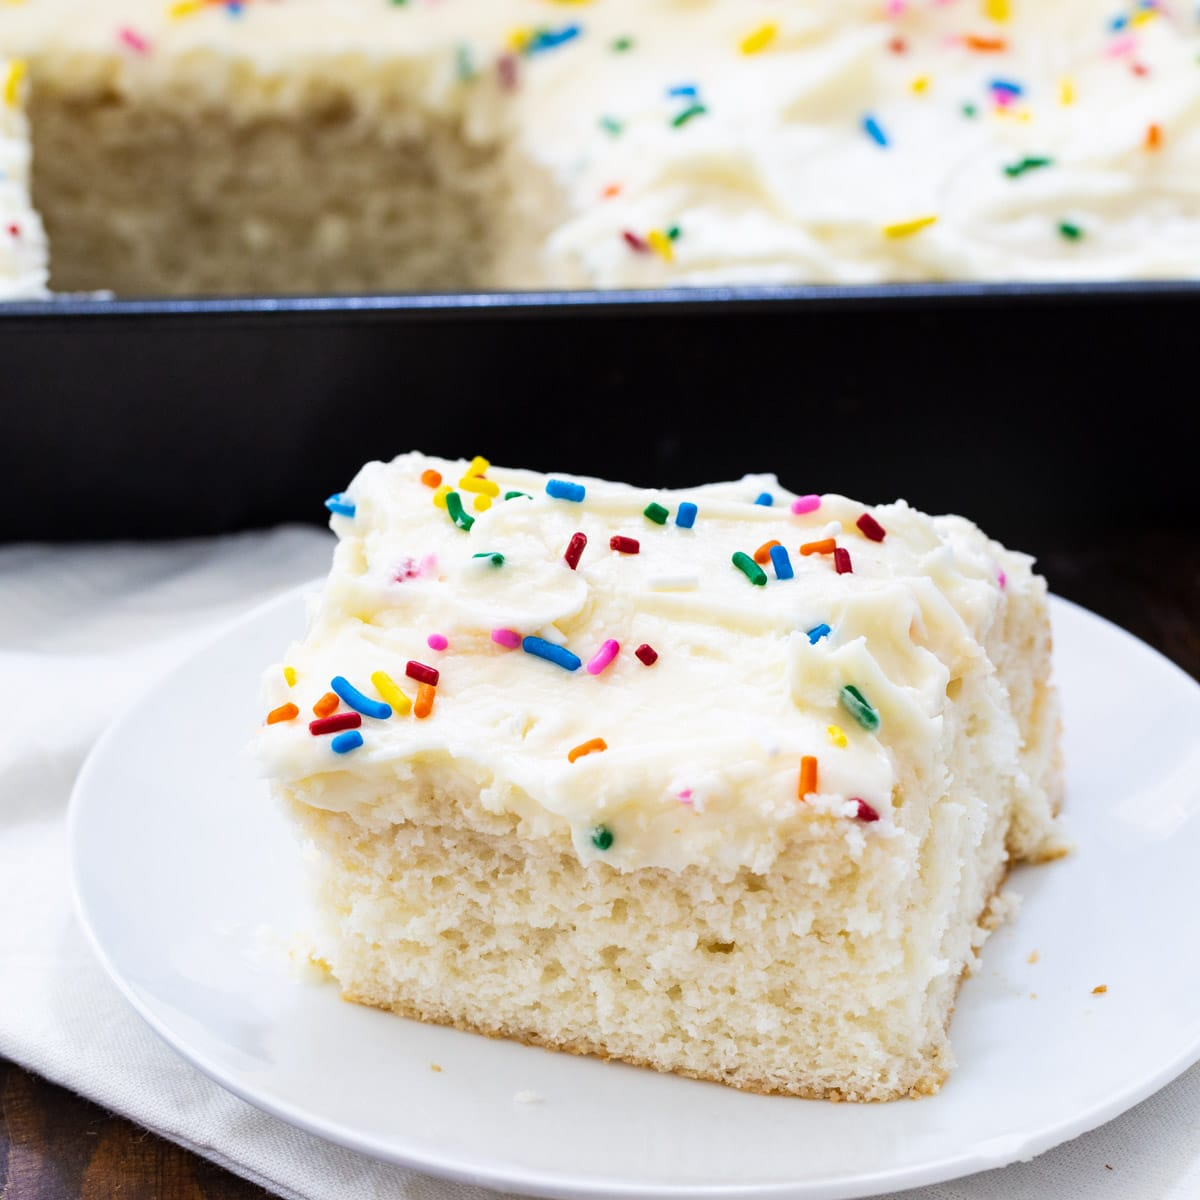 Slice of Doctored Cake Mix White Sheet Cake on a plate.